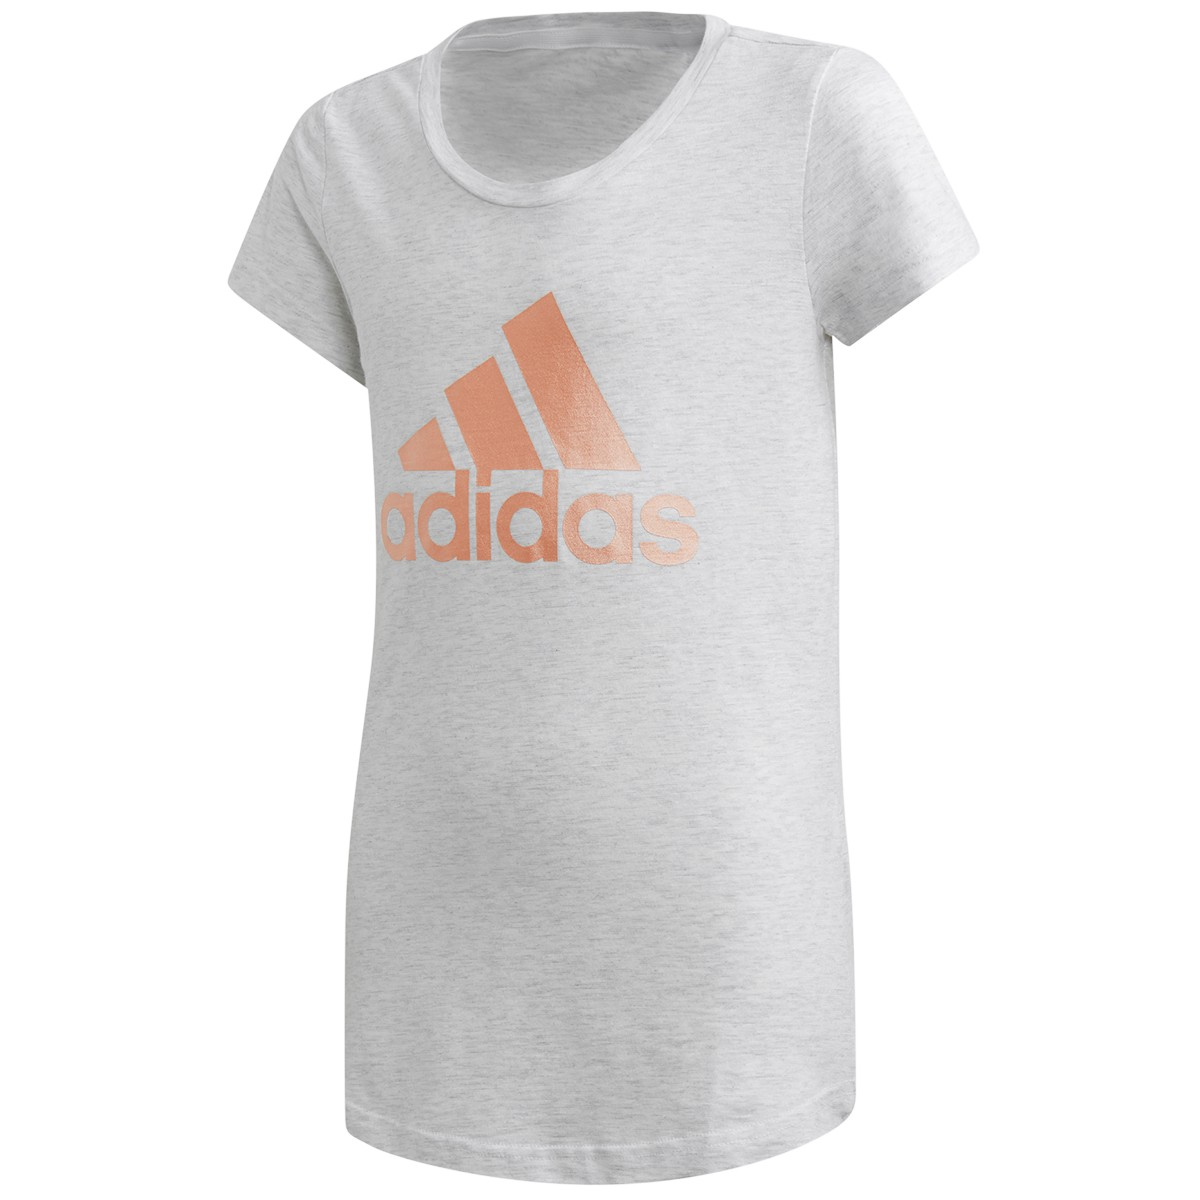 T SHIRT ADIDAS TRAINING JUNIOR FILLE ID WINNER ADIDAS